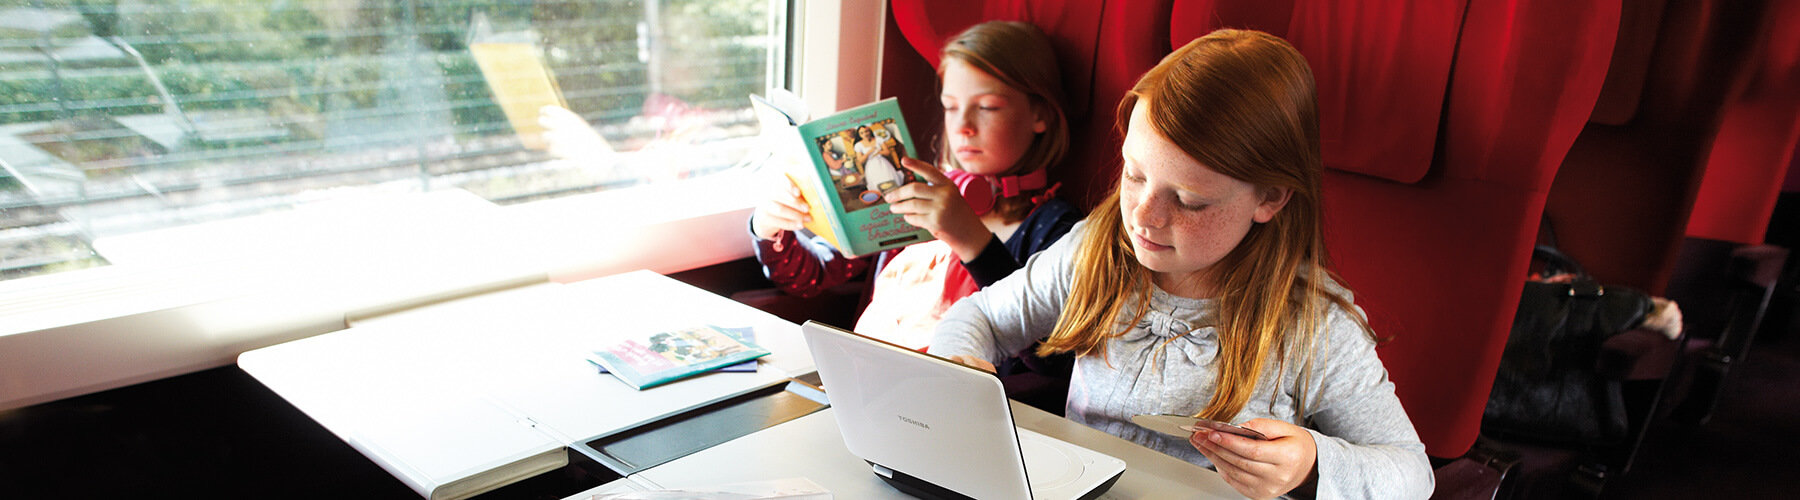 Two girls in a train